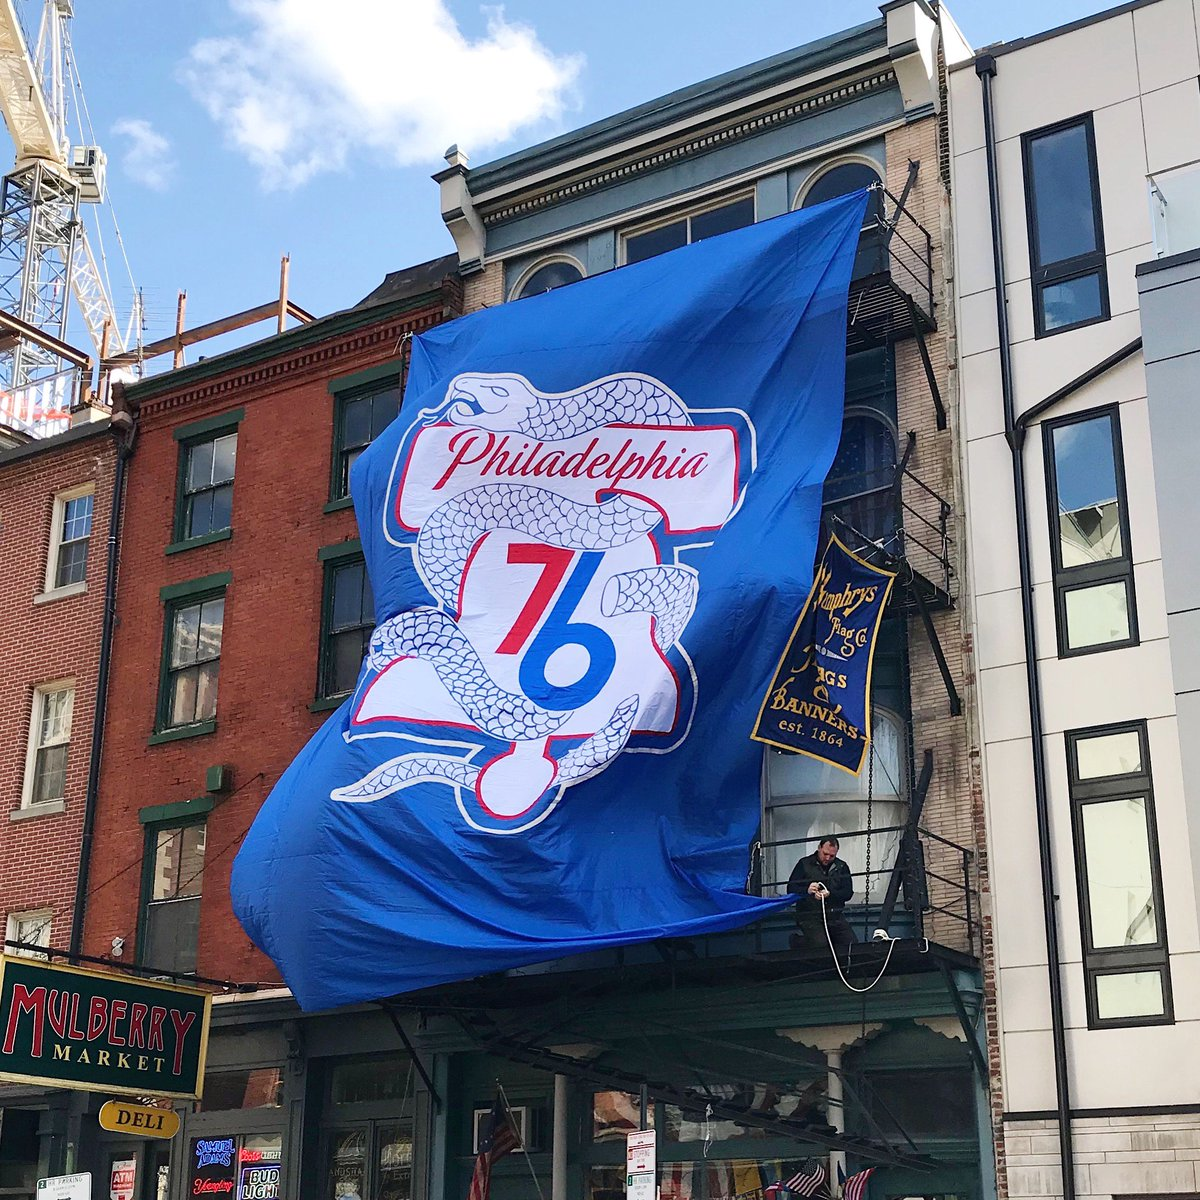 Spotted this guy hanging @Sixers flag in Old City. This photo is for all those whove been trusting the process. The time is near... #HereTheyCome #Sixers #76ers #trusttheprocess